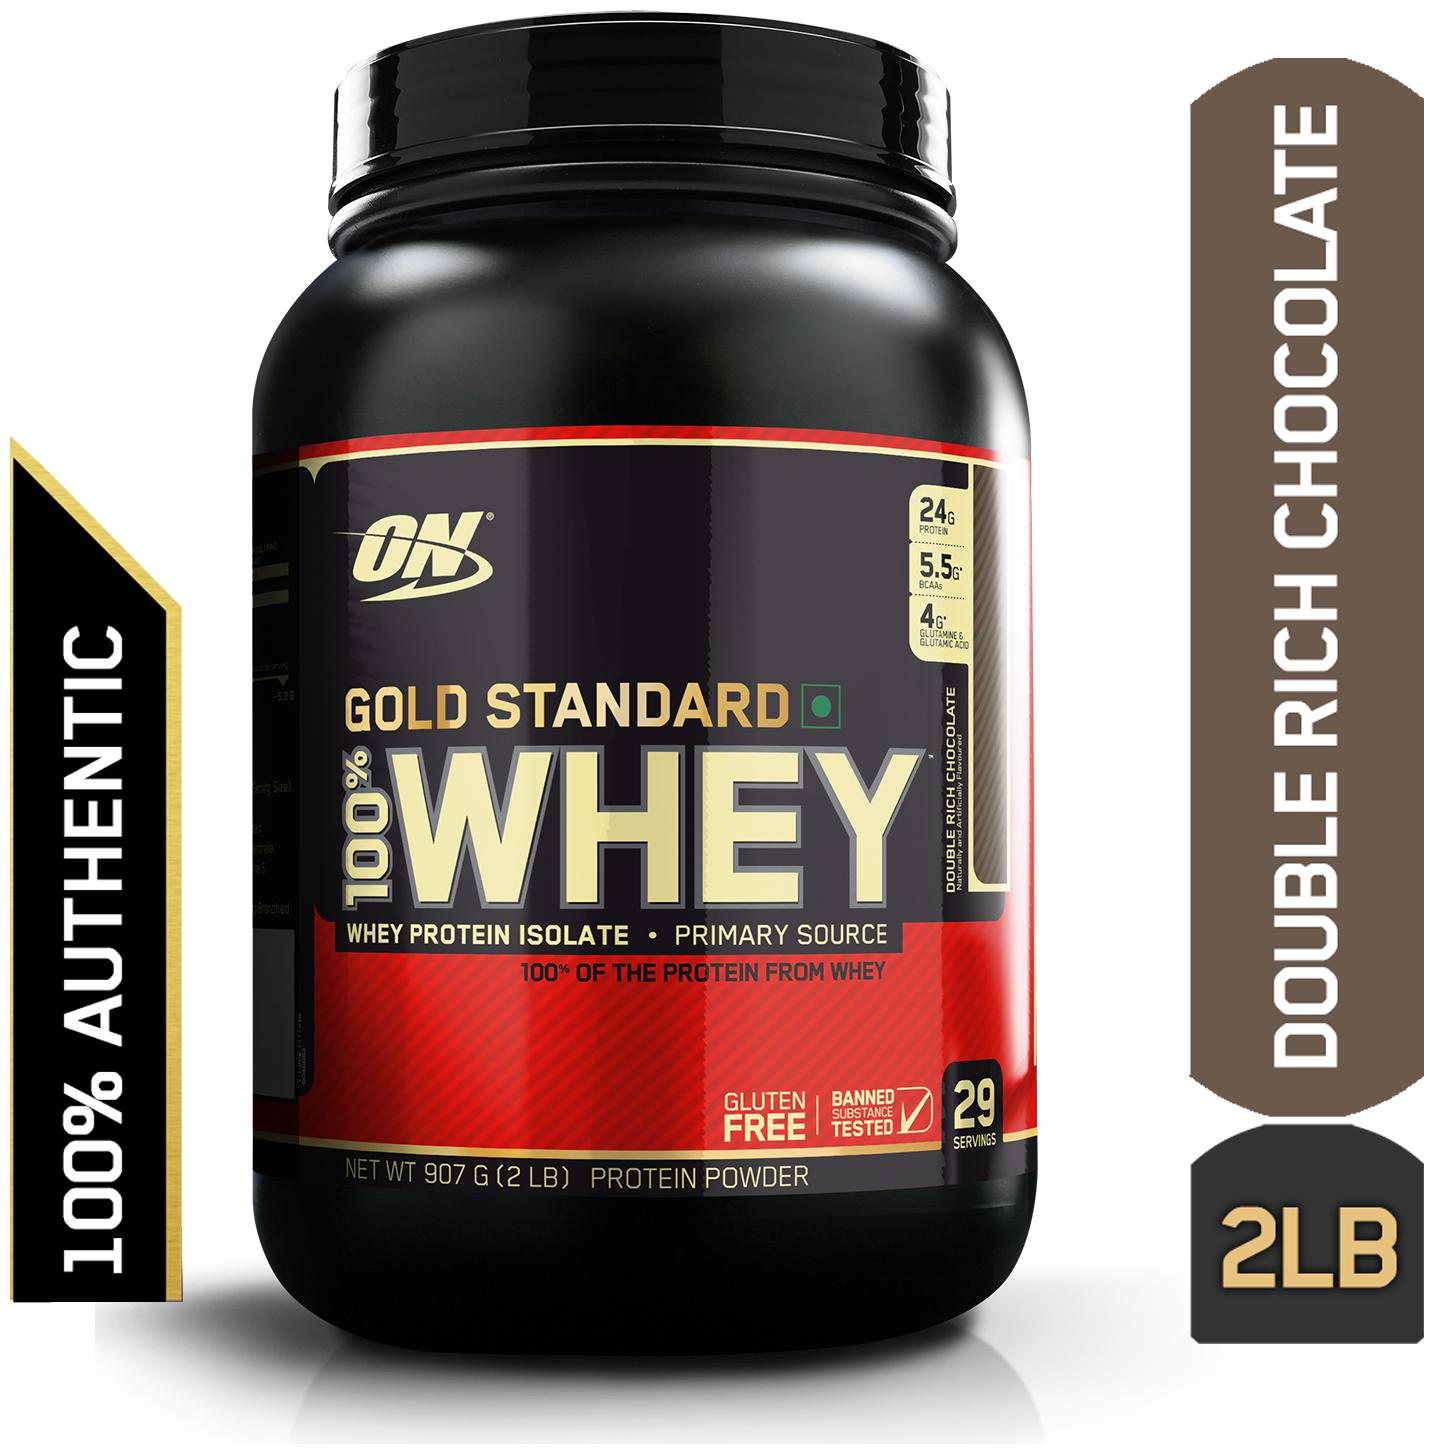 Optimum Nutrition  On  Gold Standard 100% Whey Protein Powder   0.90 kg  2 lb   Double Rich Chocolate